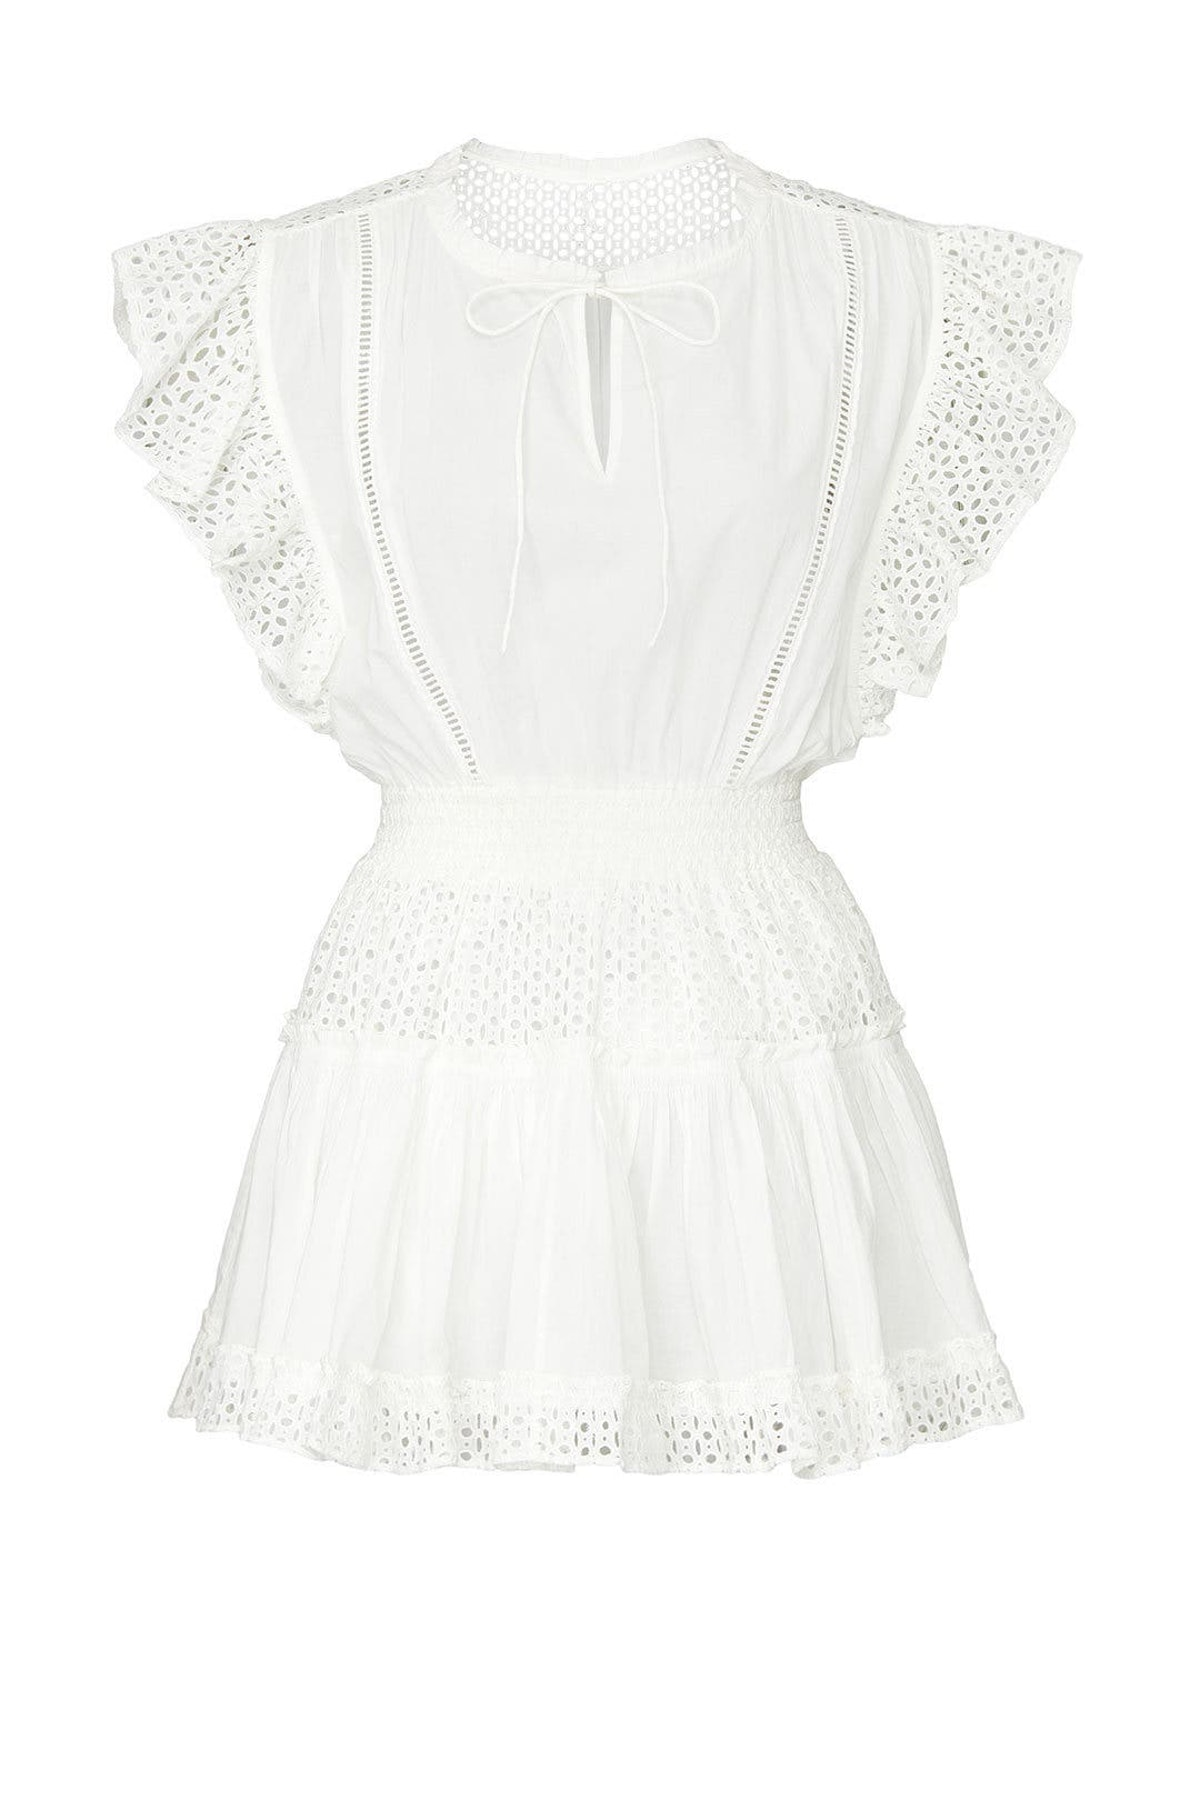 White Sakira dress from MISA Los Angeles, available to shop or rent via Rent The Runway.